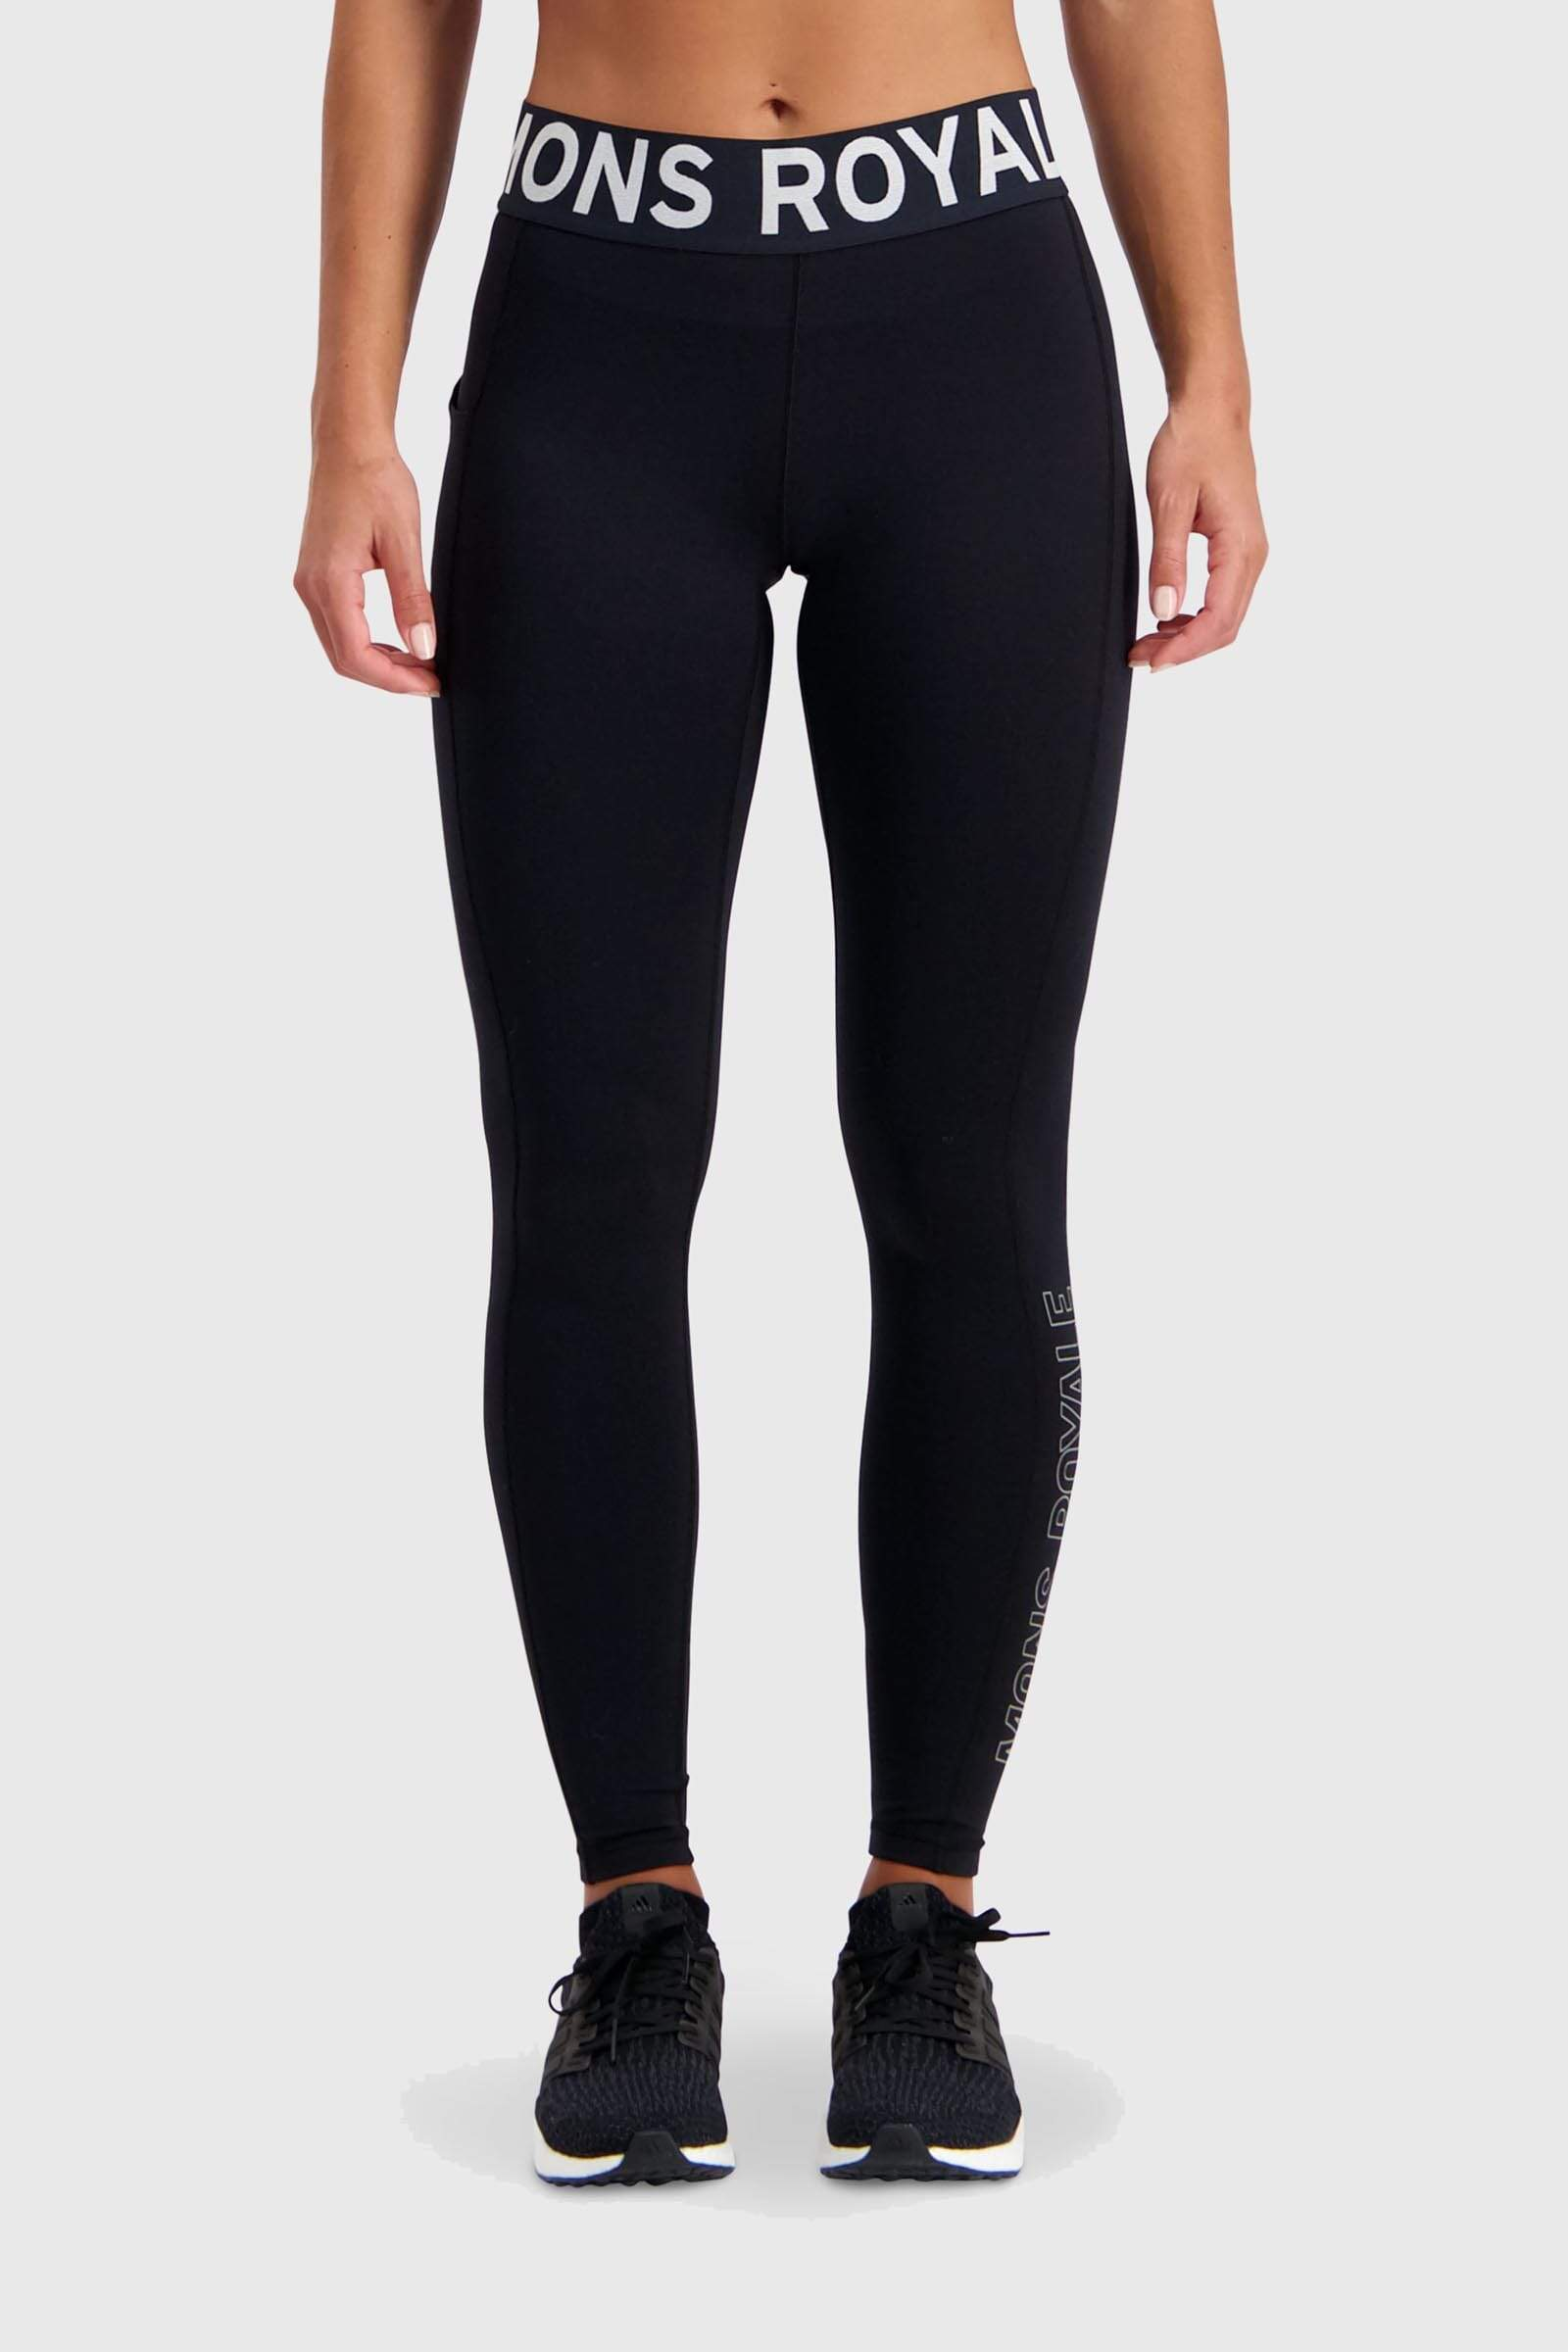 XYNZ Legging - Black